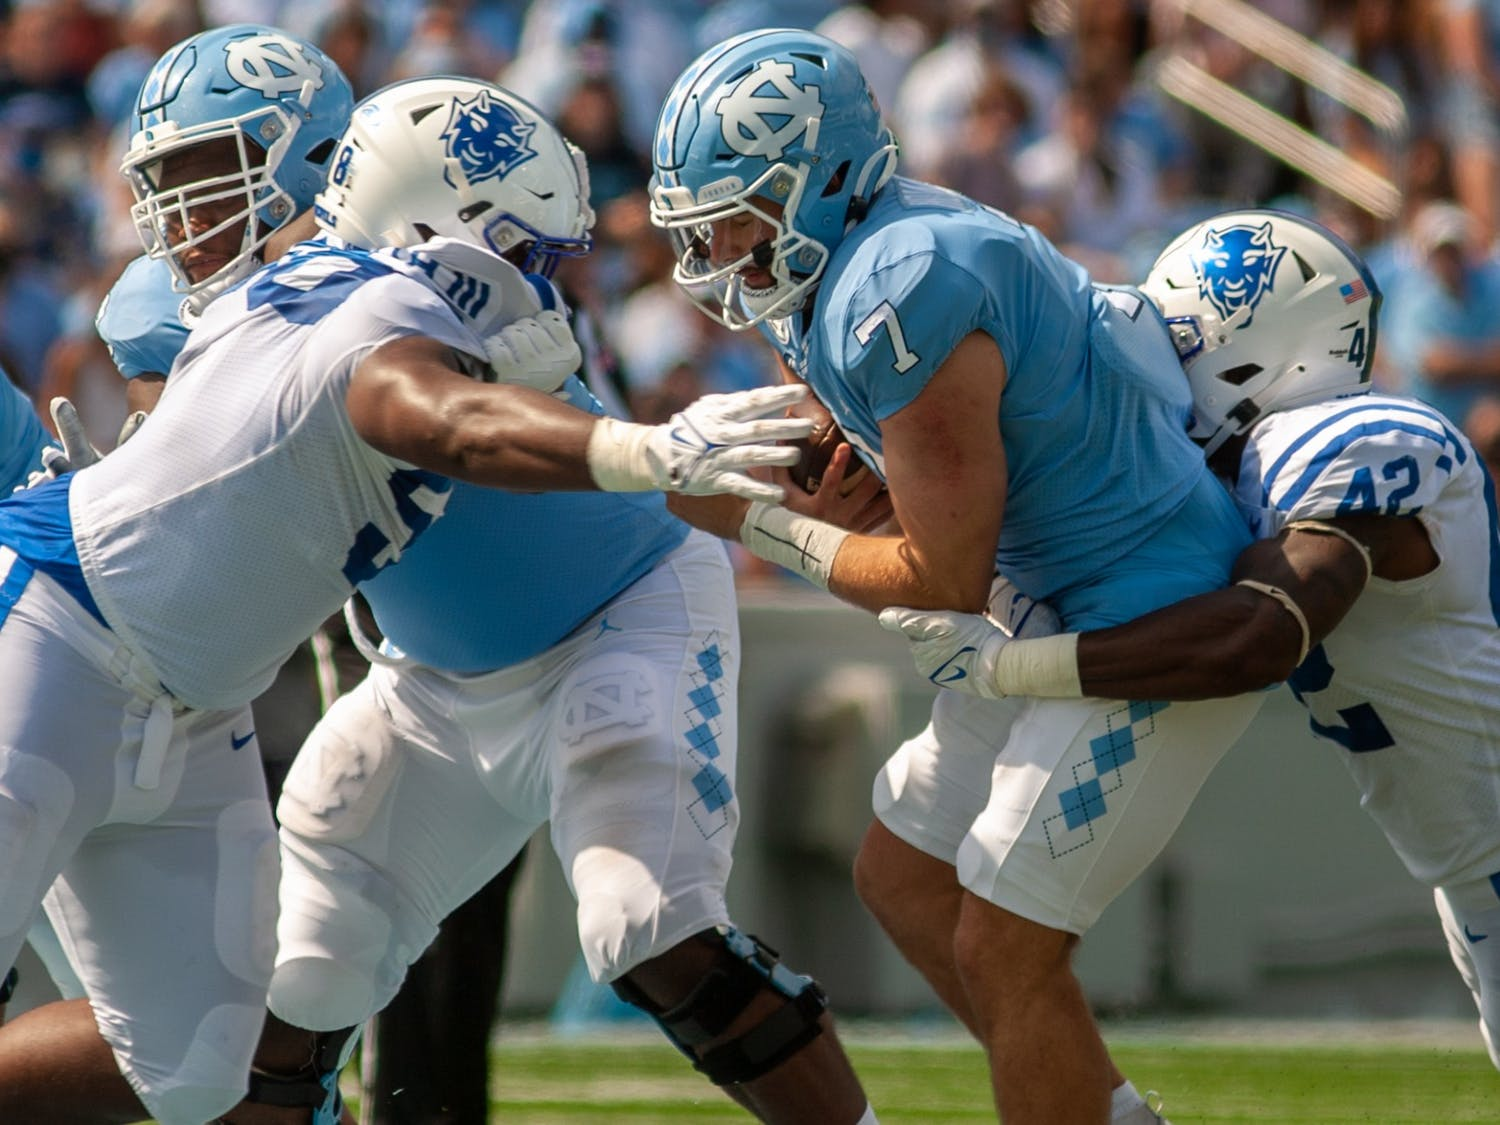 Junior quarterback Sam Howell (7) is tackled during a carry at the game against Duke on Oct. 2 at Kenan Stadium.